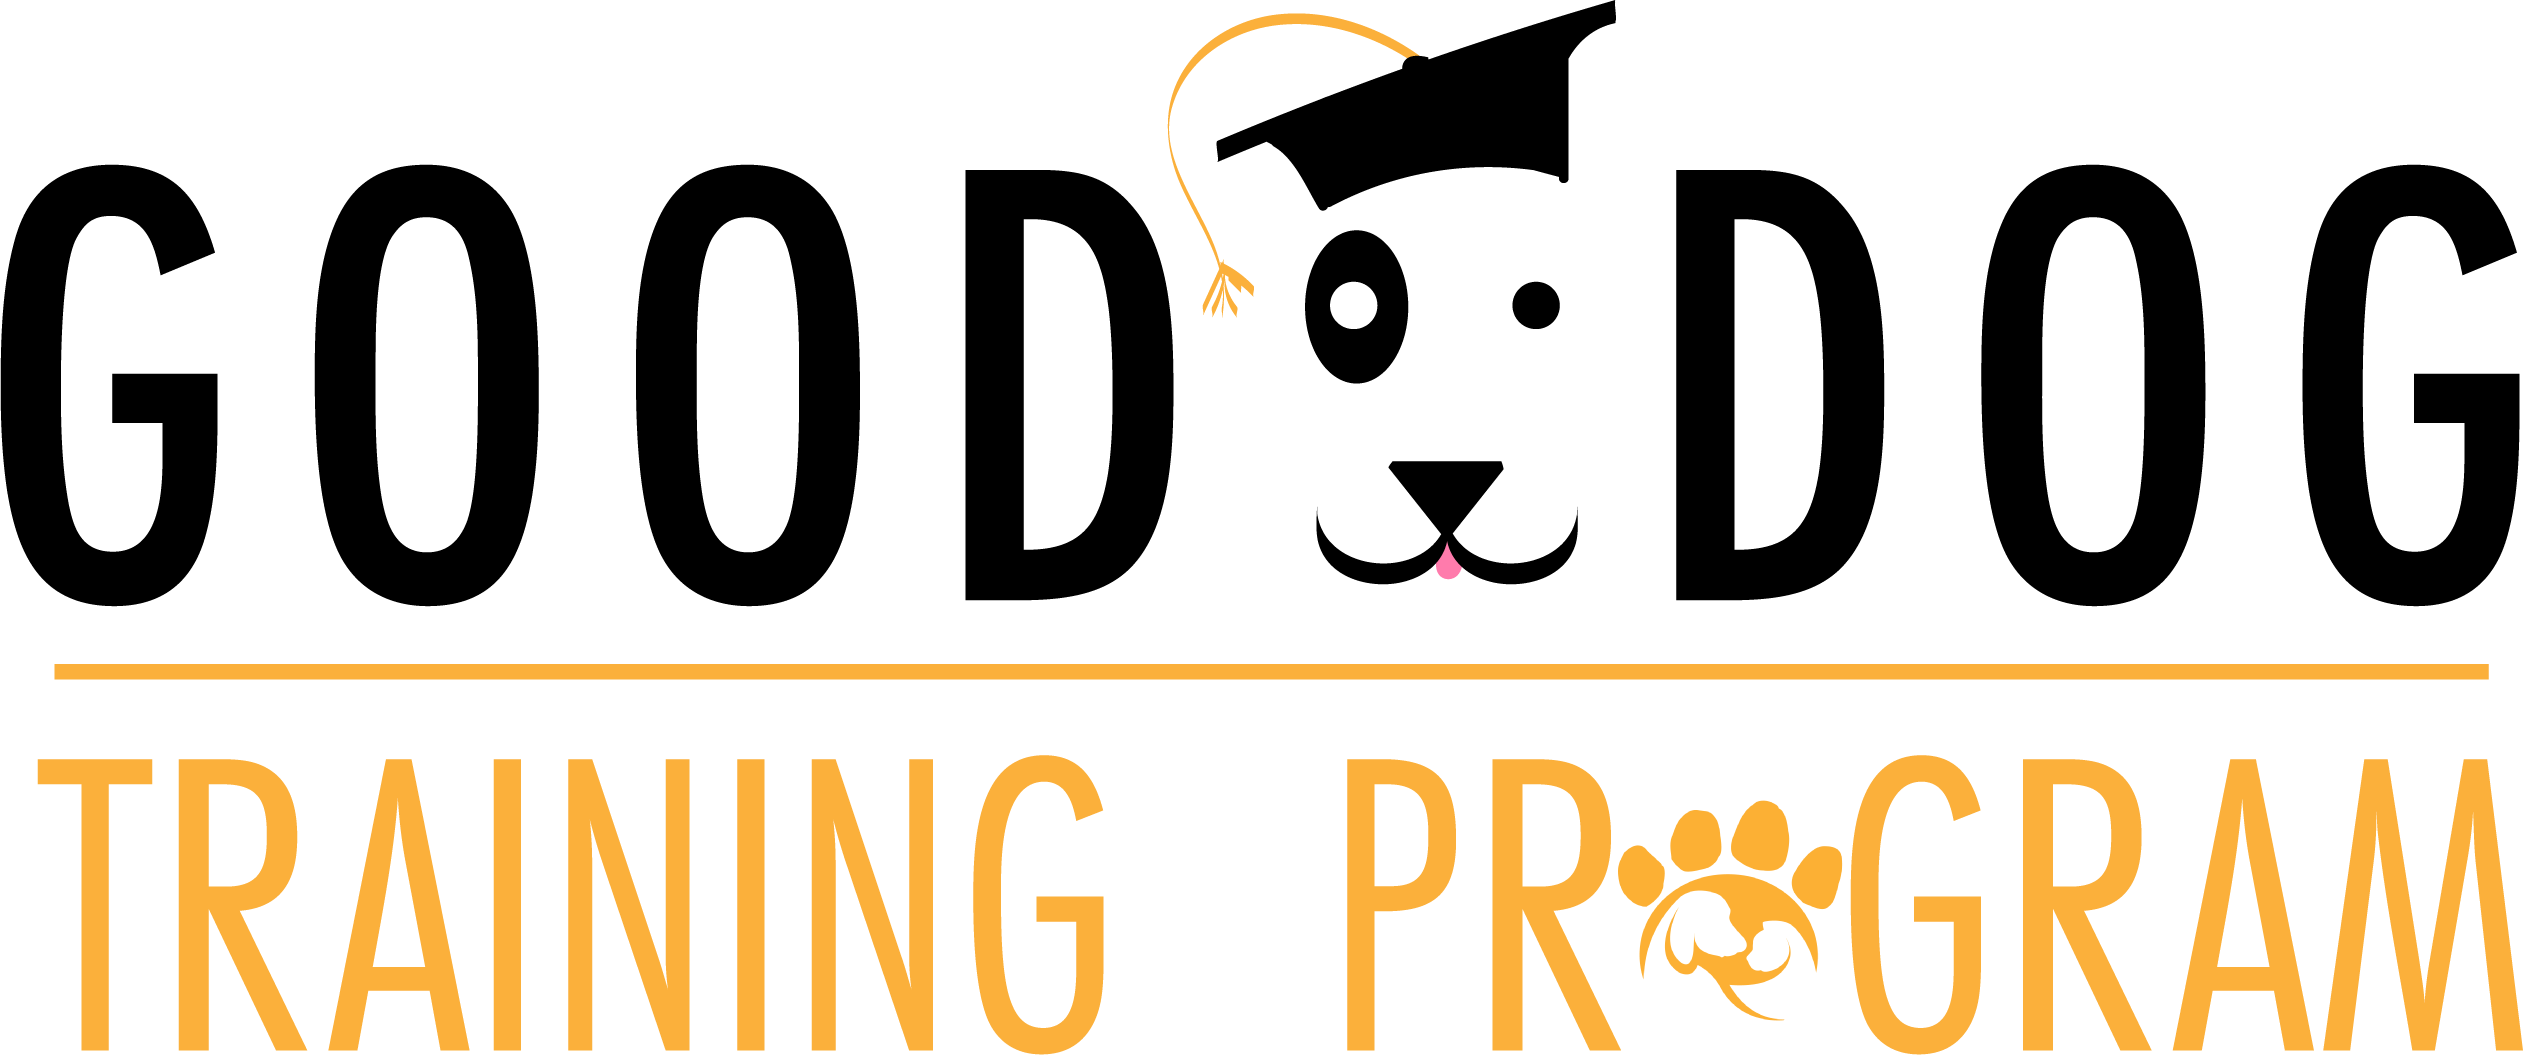 Good Dog Training Program Logo